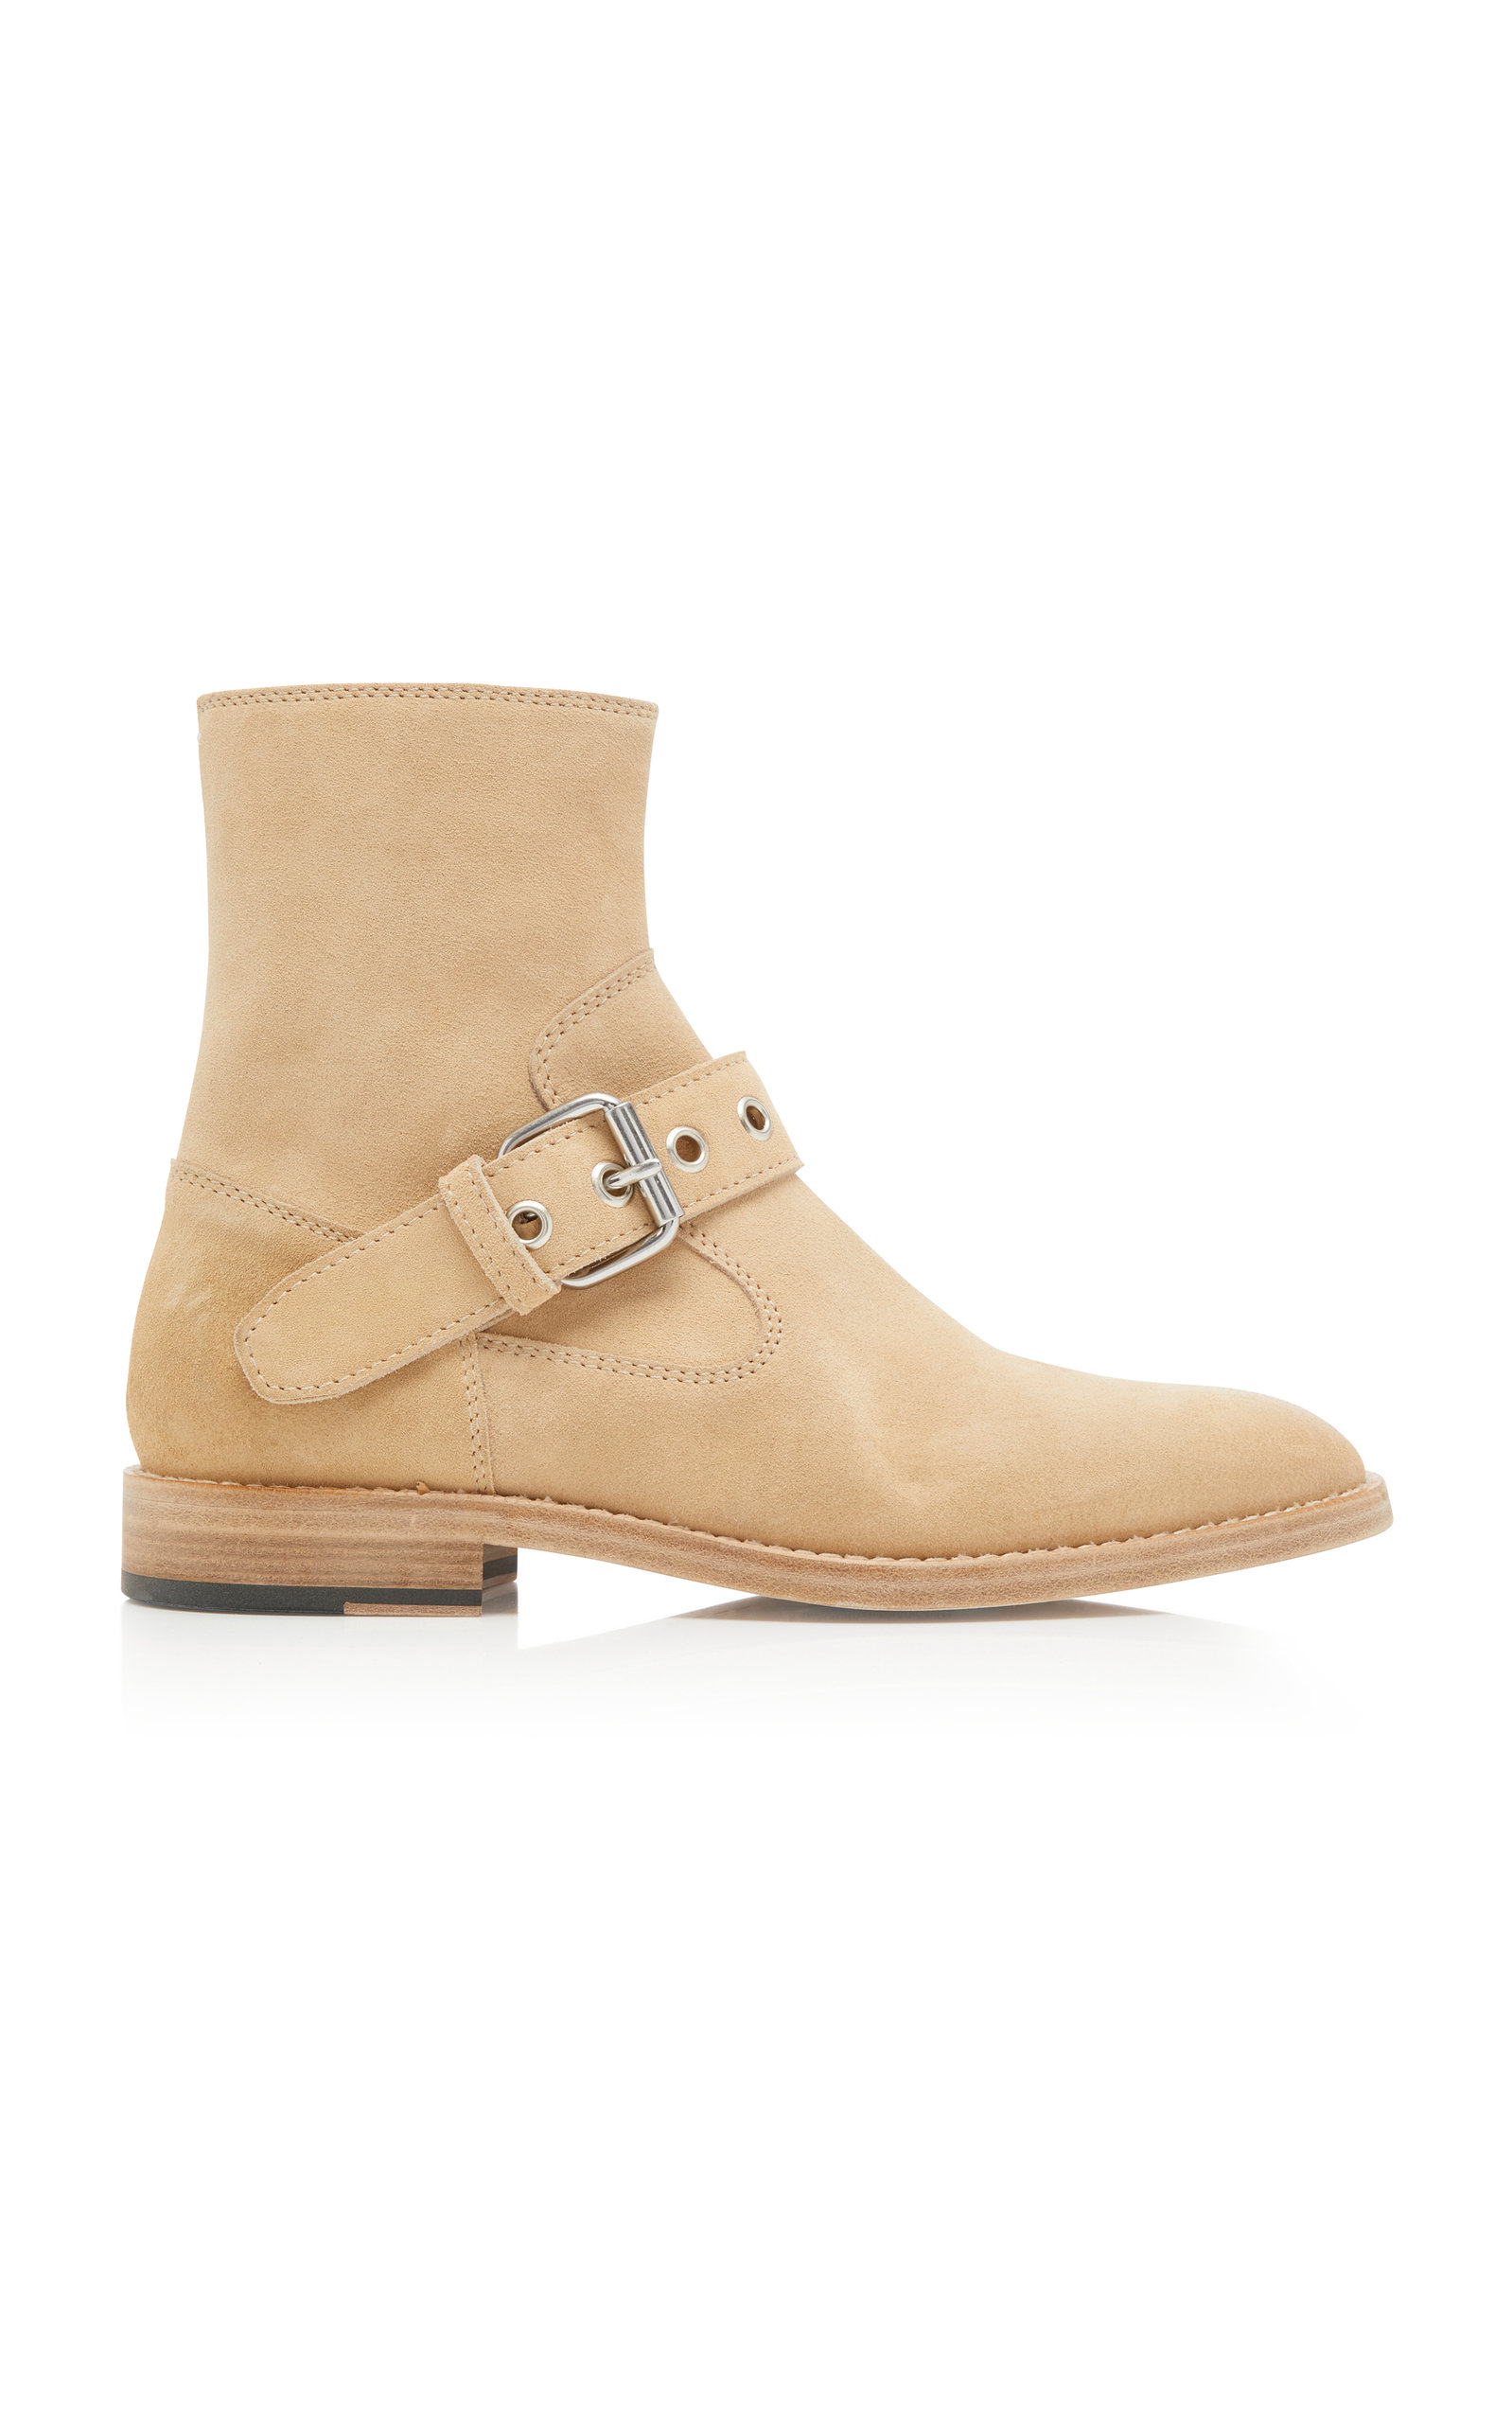 Tall Buckled Ankle Boots by Maison Margiela